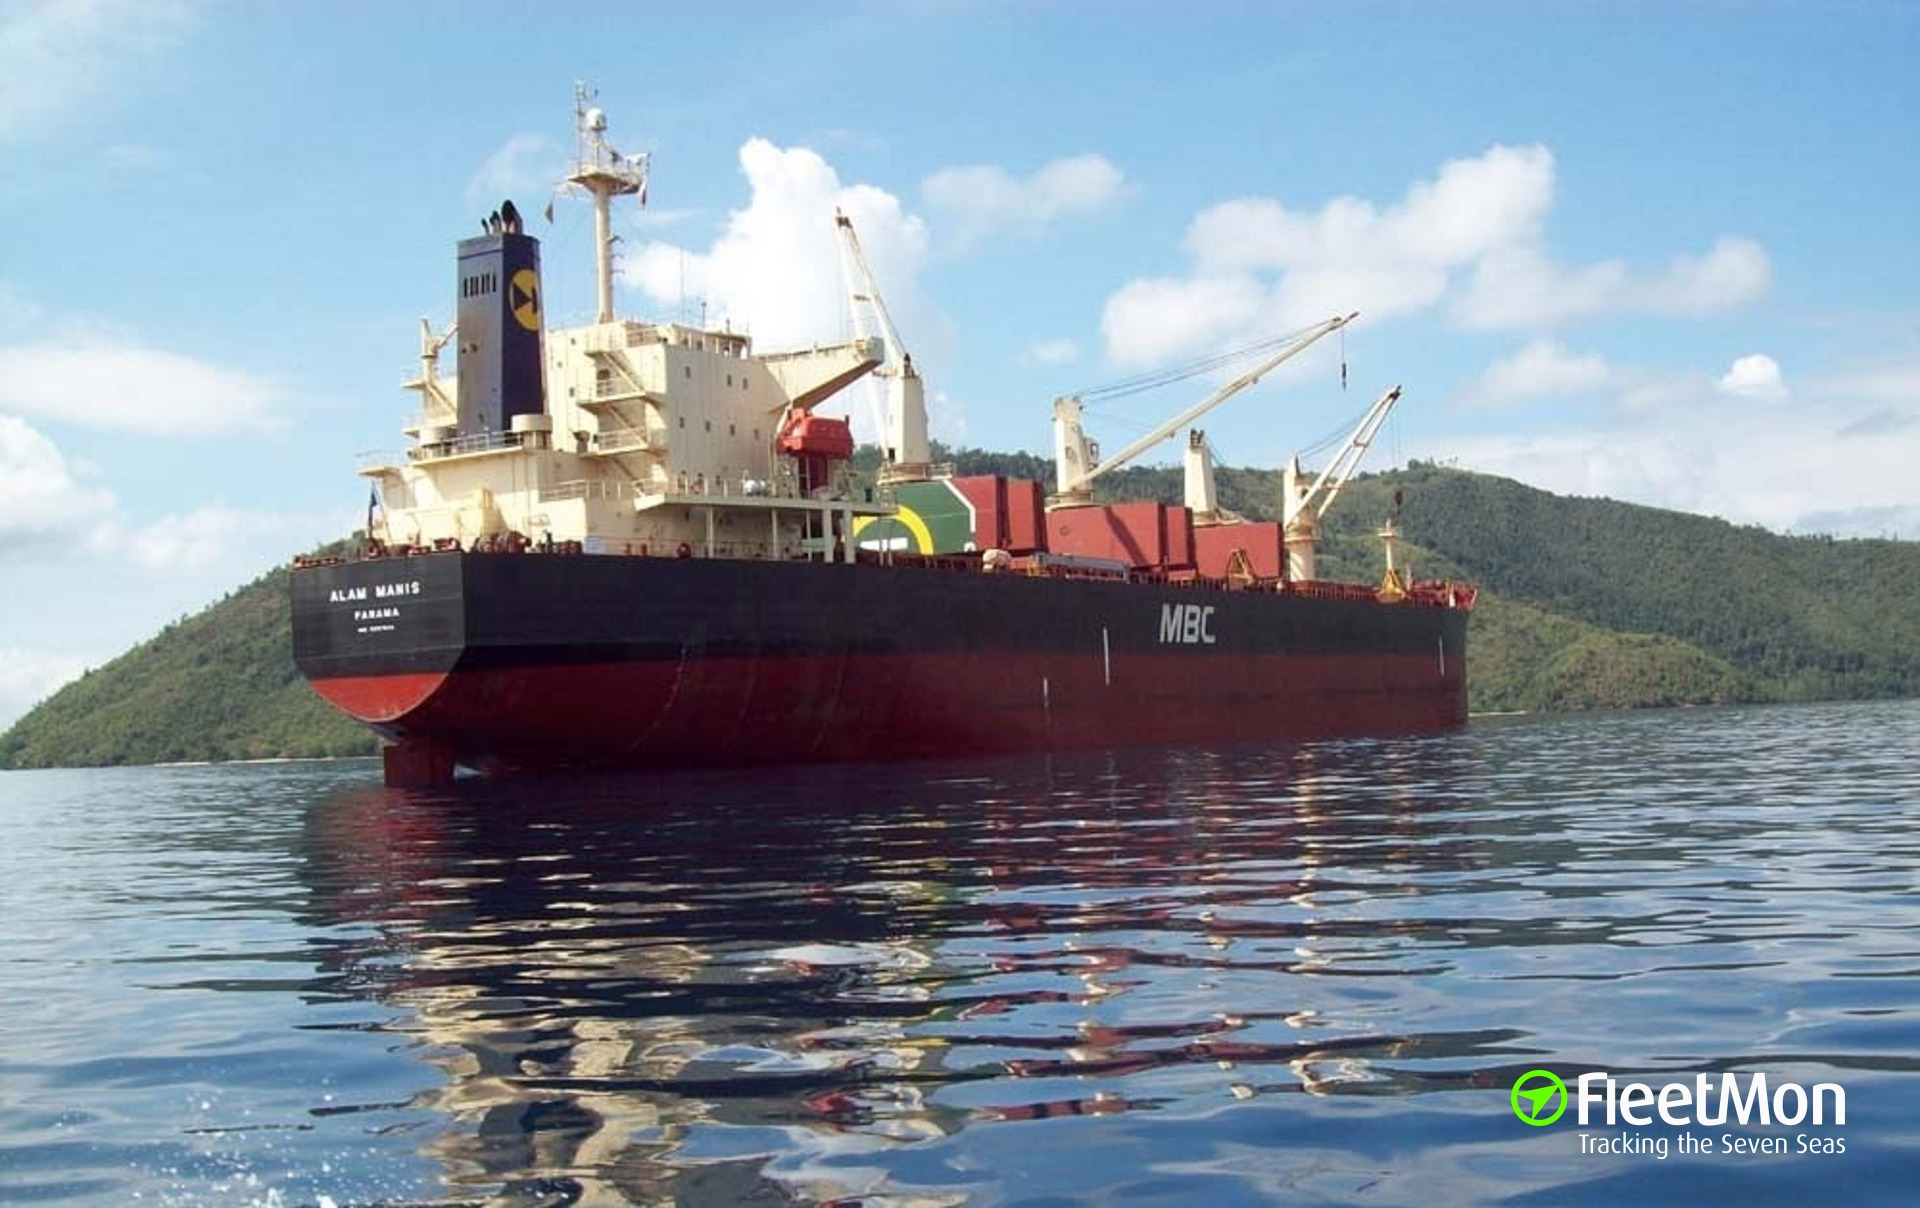 Bulk carrier Alam Manis aground, probably to avoid capsizing